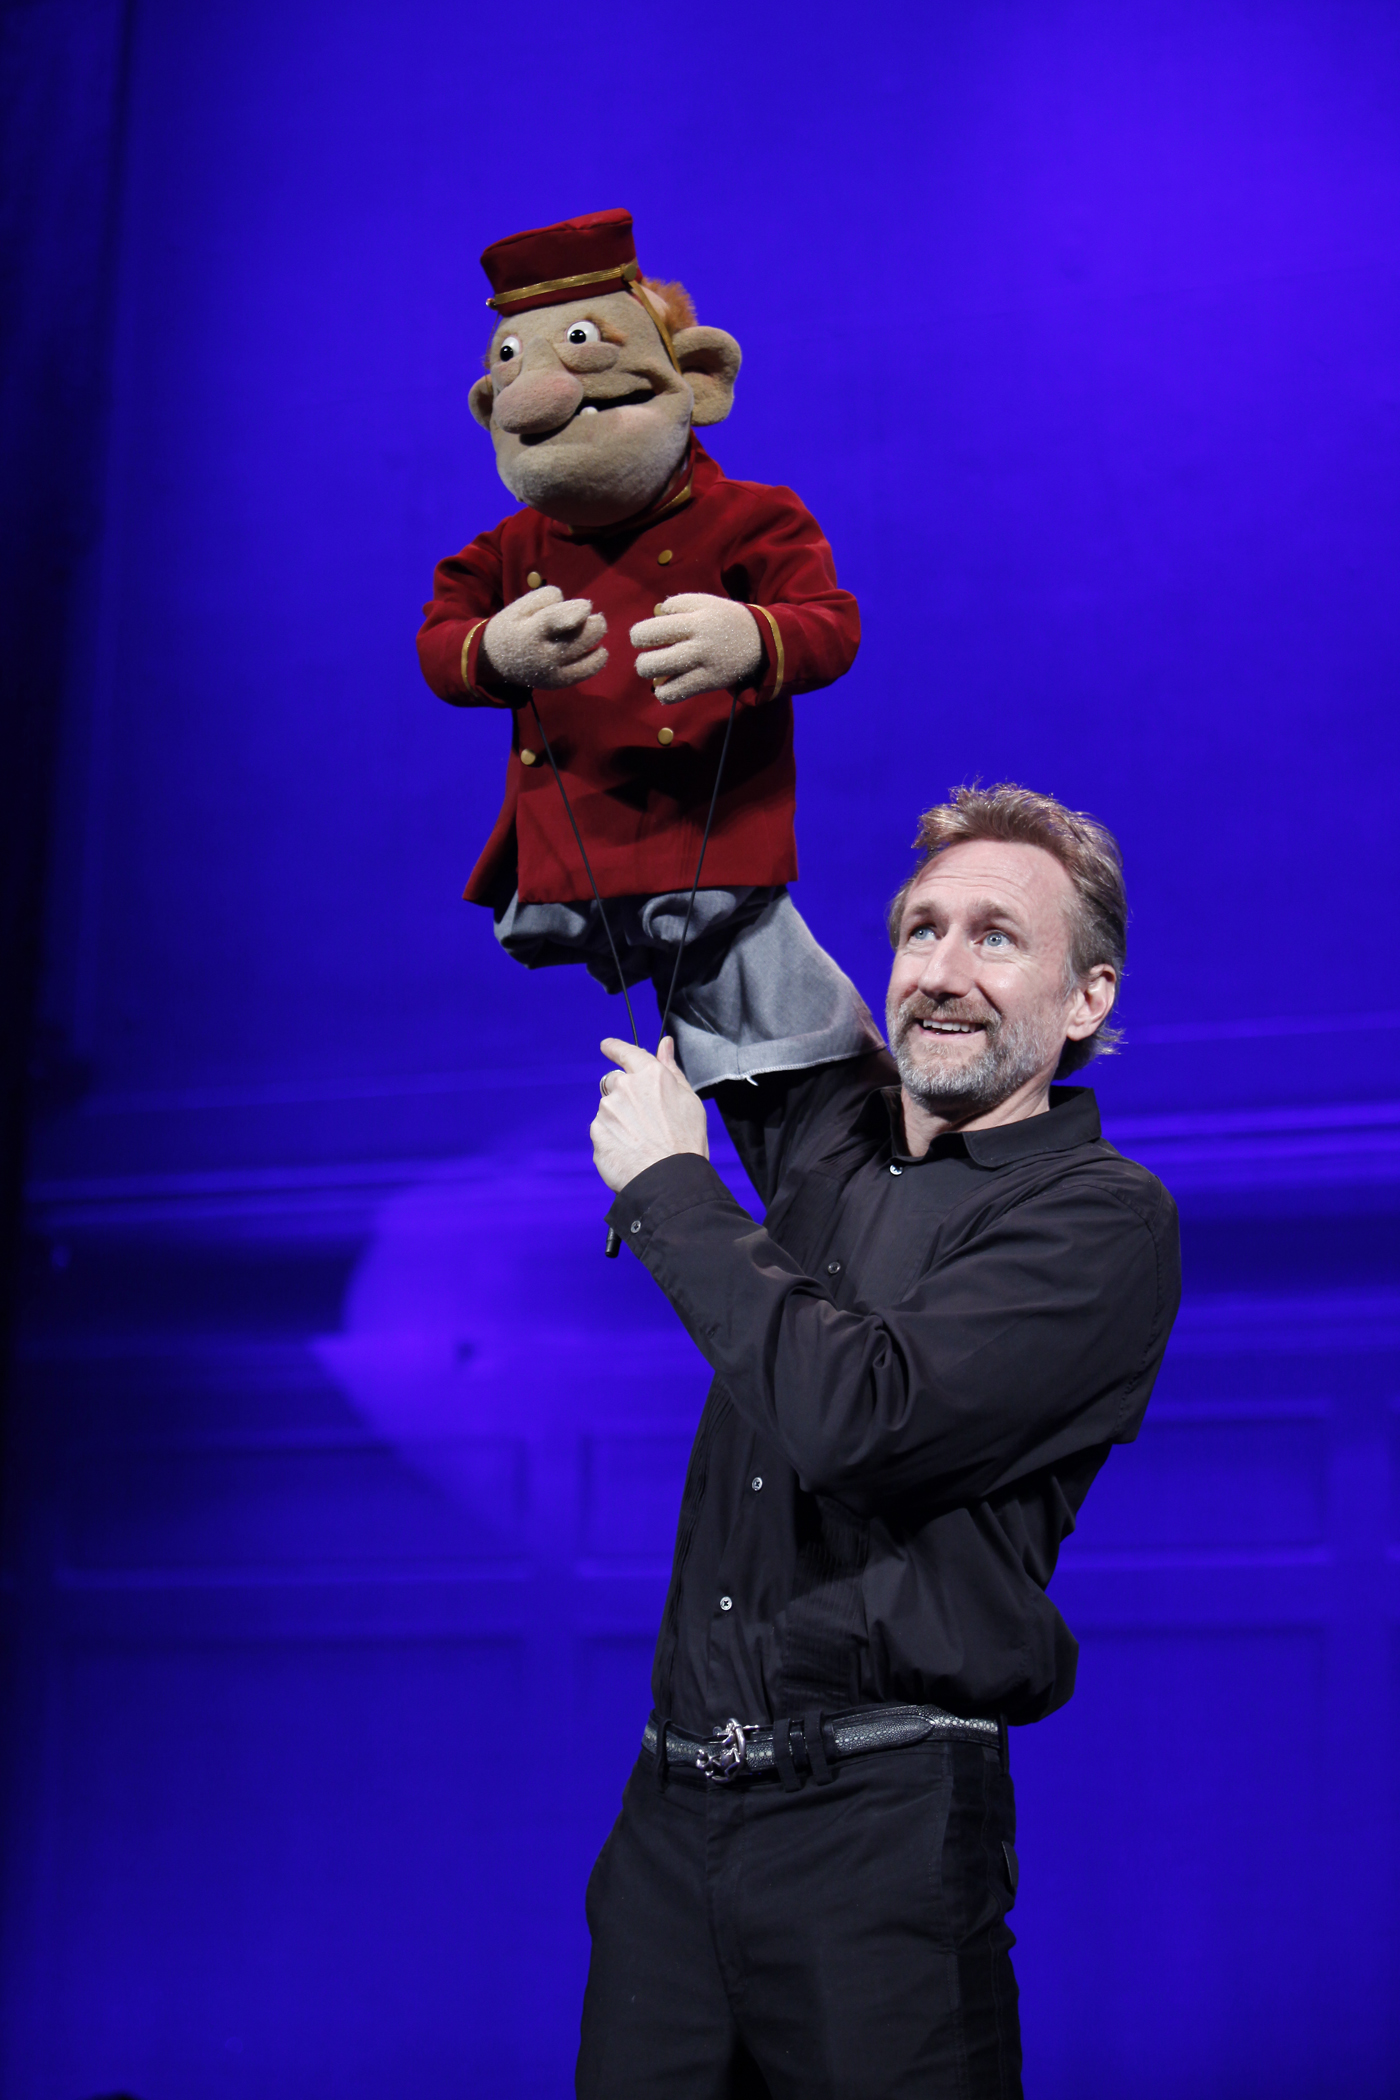 Brian Henson, Chairman of The Jim Henson Company